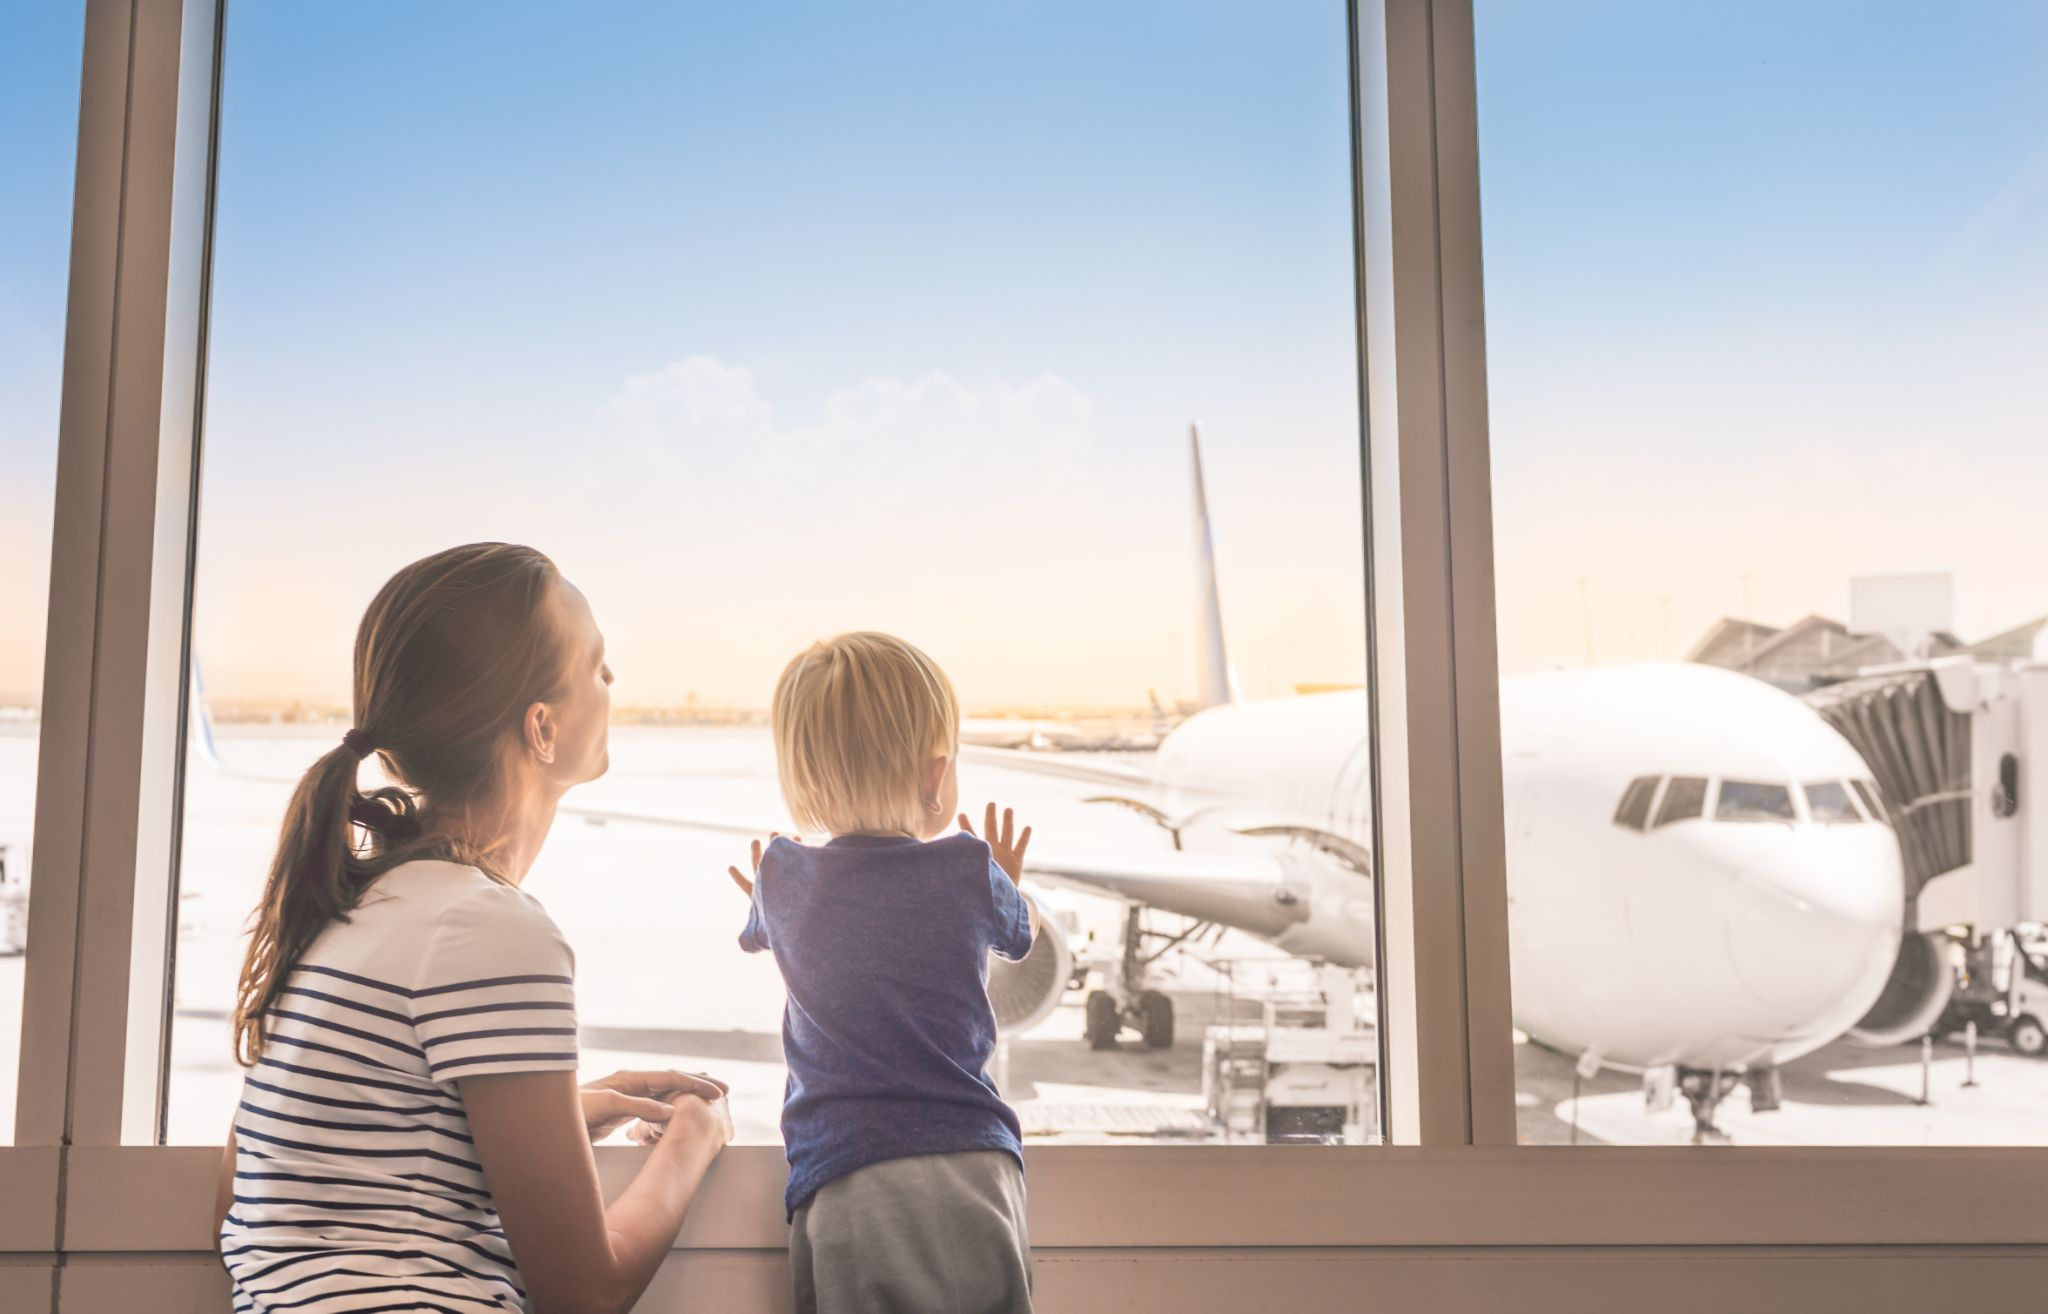 Mother and son at airport looking out window at airplane